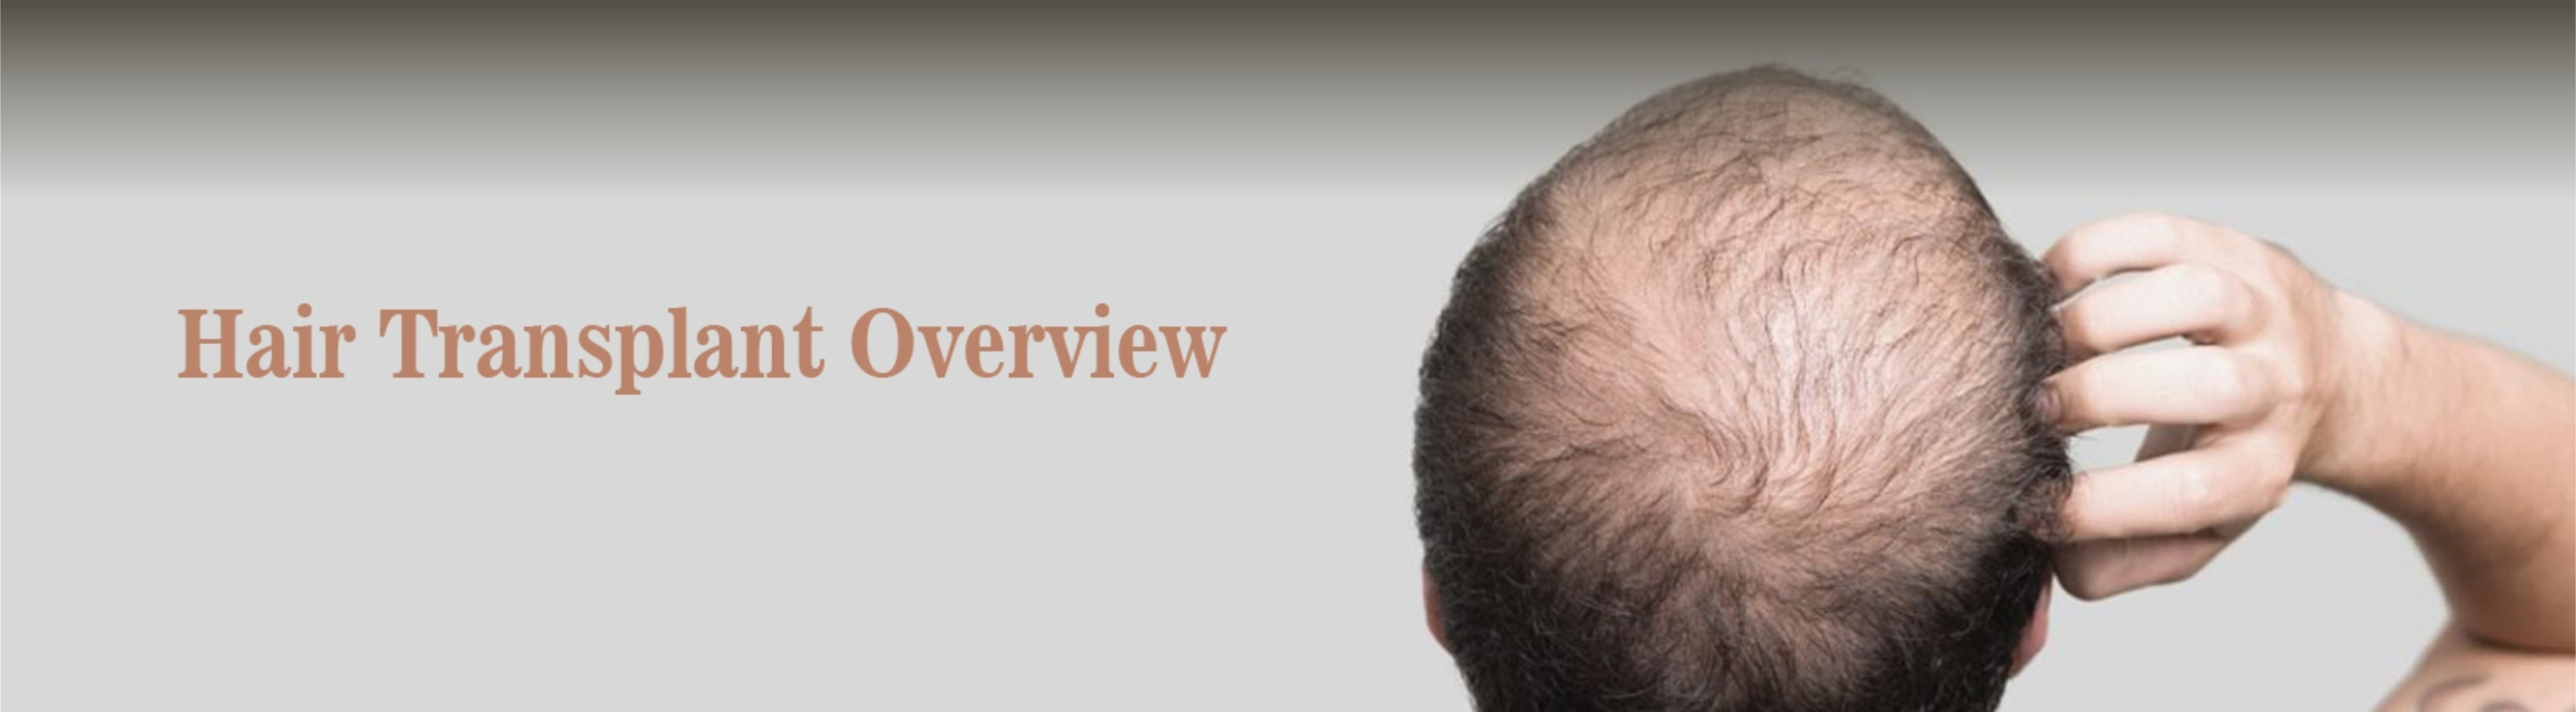 Best Hair Transplant Surgeons In The World